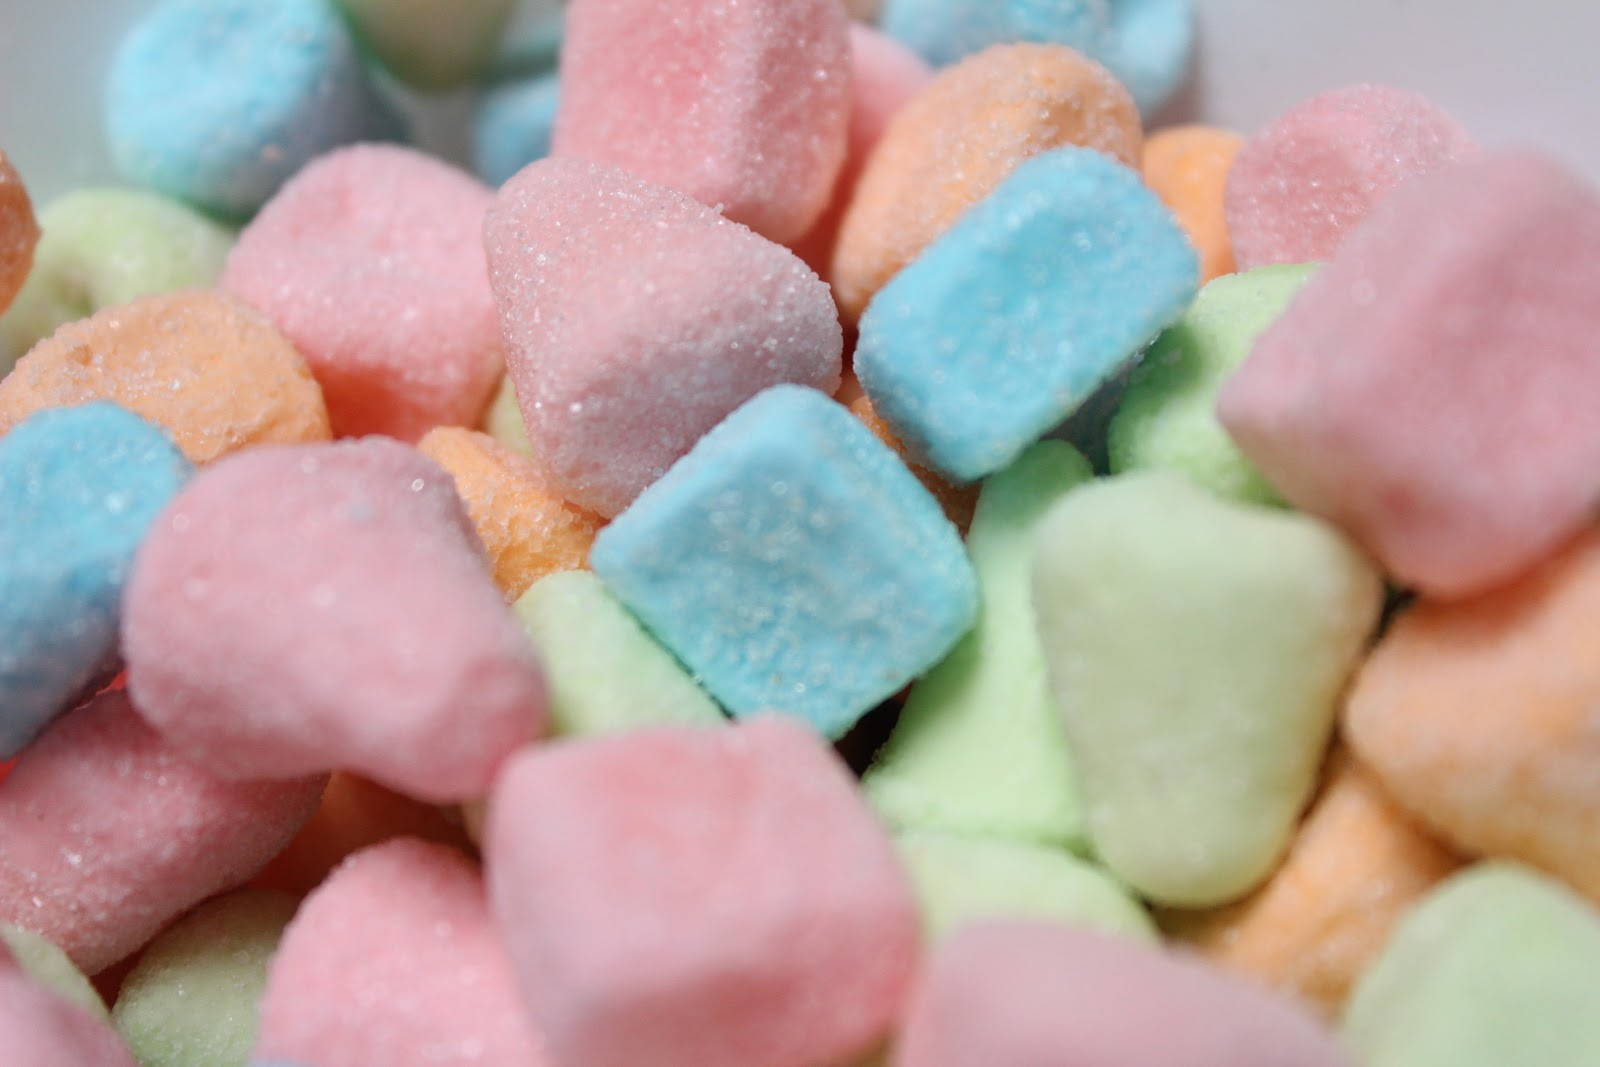 Foods-That-Cause-Cavities